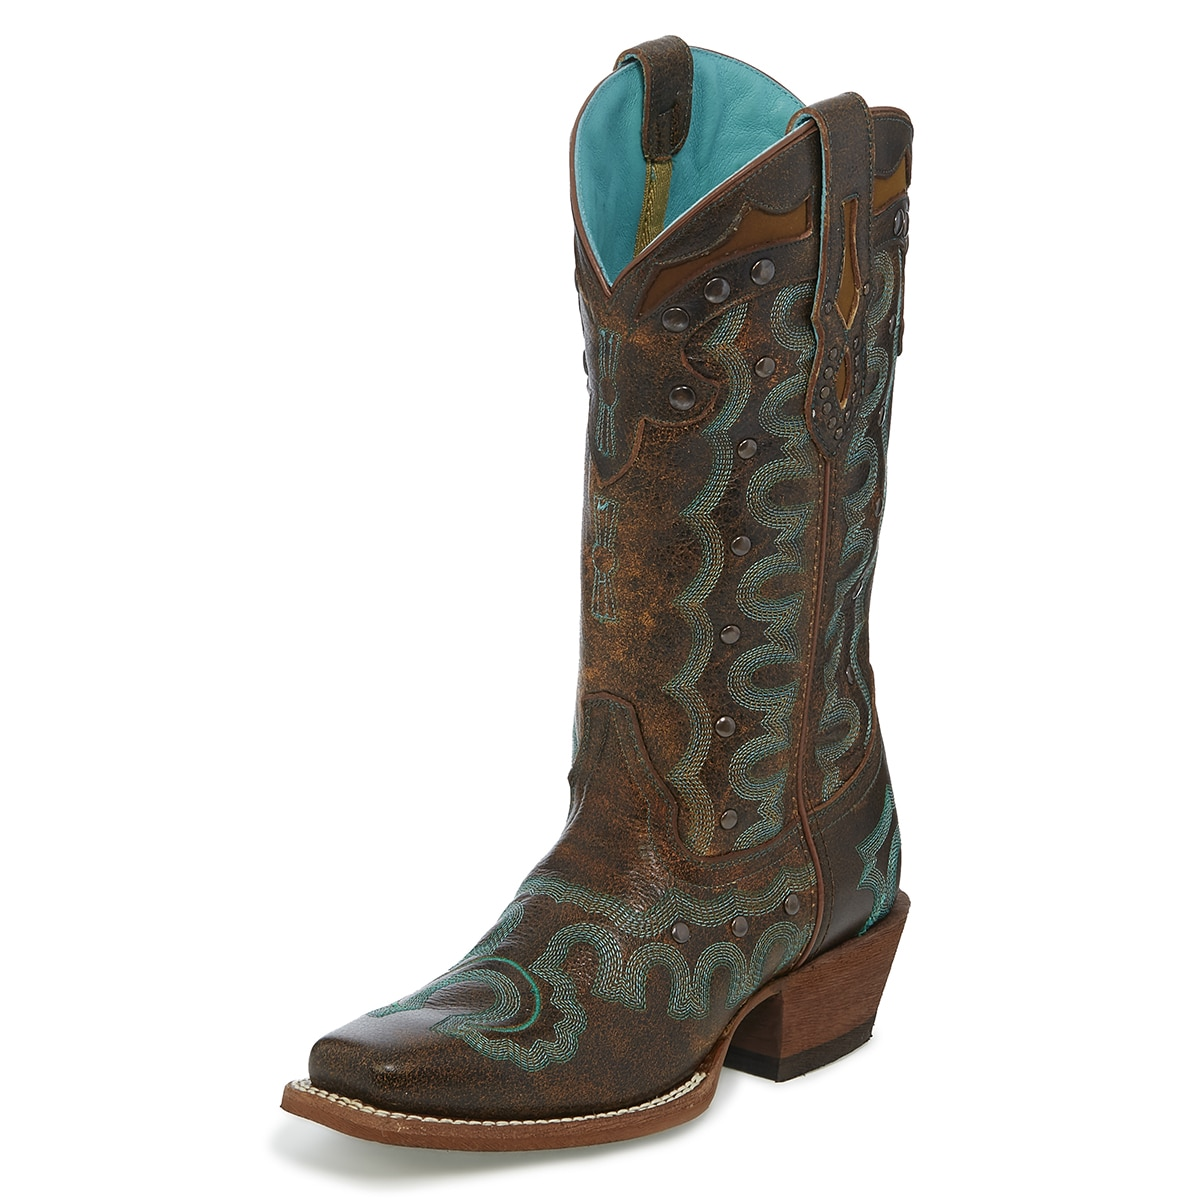 Justin Women's Fashion Faxon Boots - Chocolate